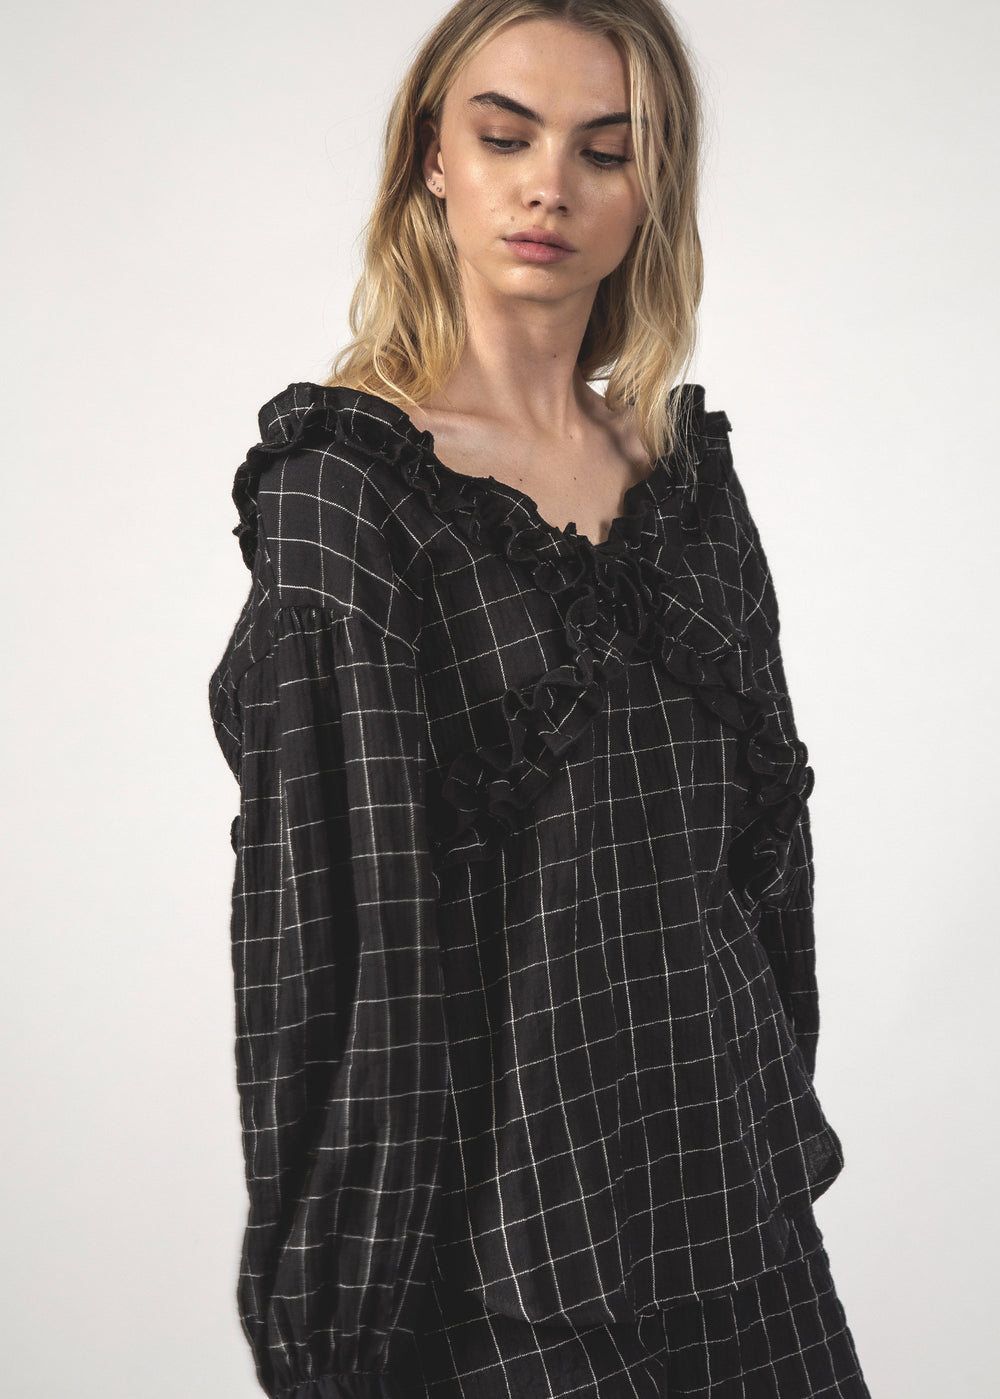 SALE - ZIGZAG TOP - Black Grid